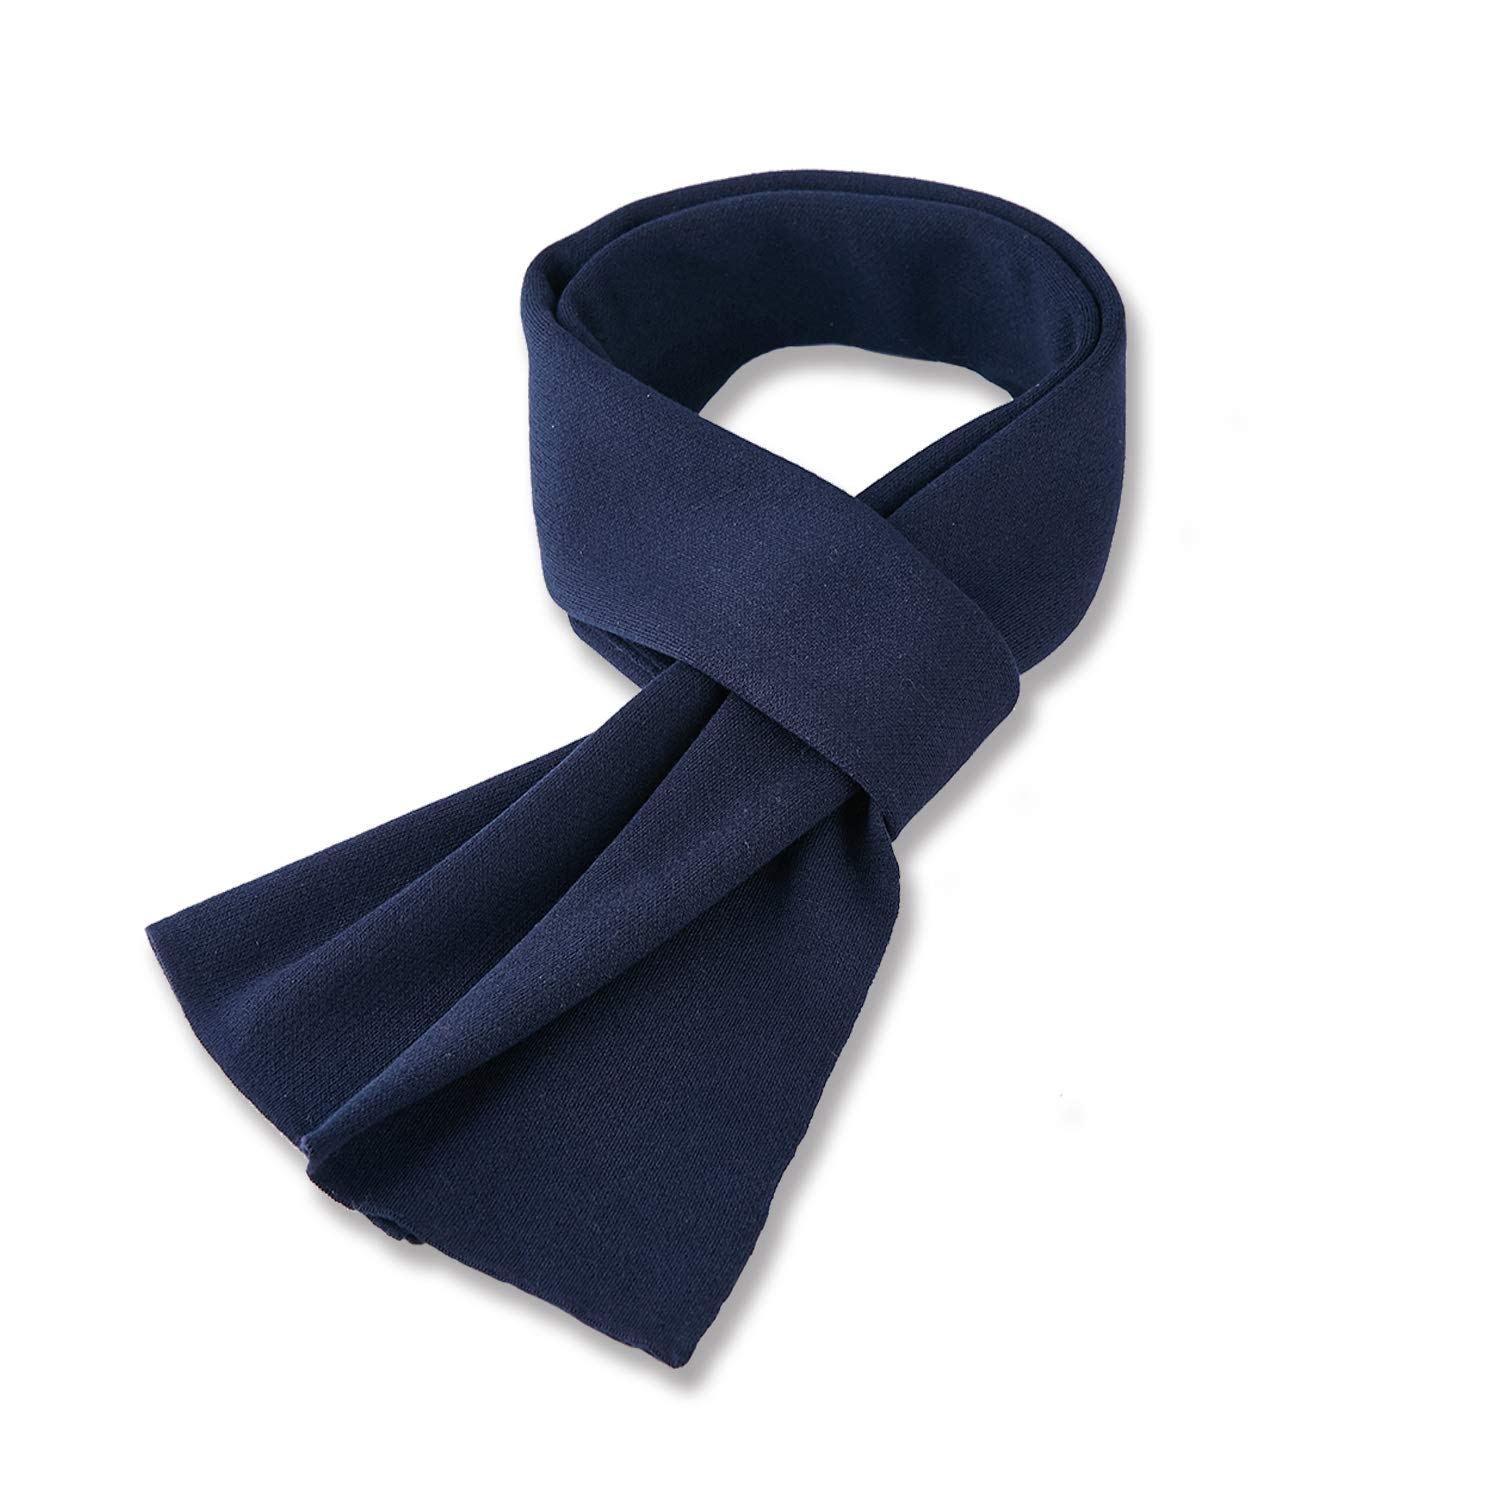 Taylormia Men's Winter Fashion Cashmere Feel Solid Color Scarf Warm Soft Wool Knit Scarves(Blue)